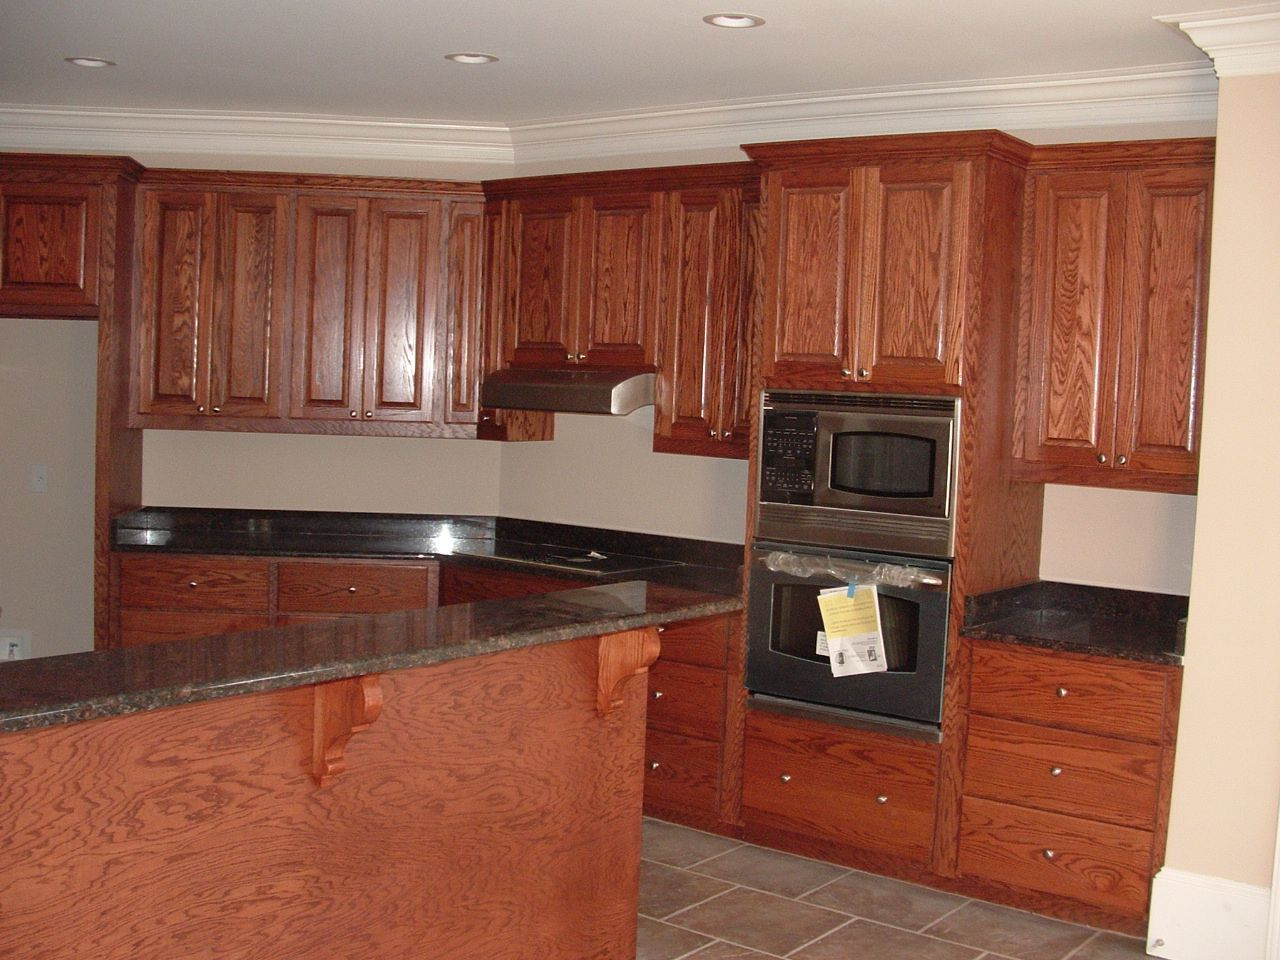 Mills Pride Cabinets For Sale: Excellent Idea On Mills Pride Kitchen Cabinets